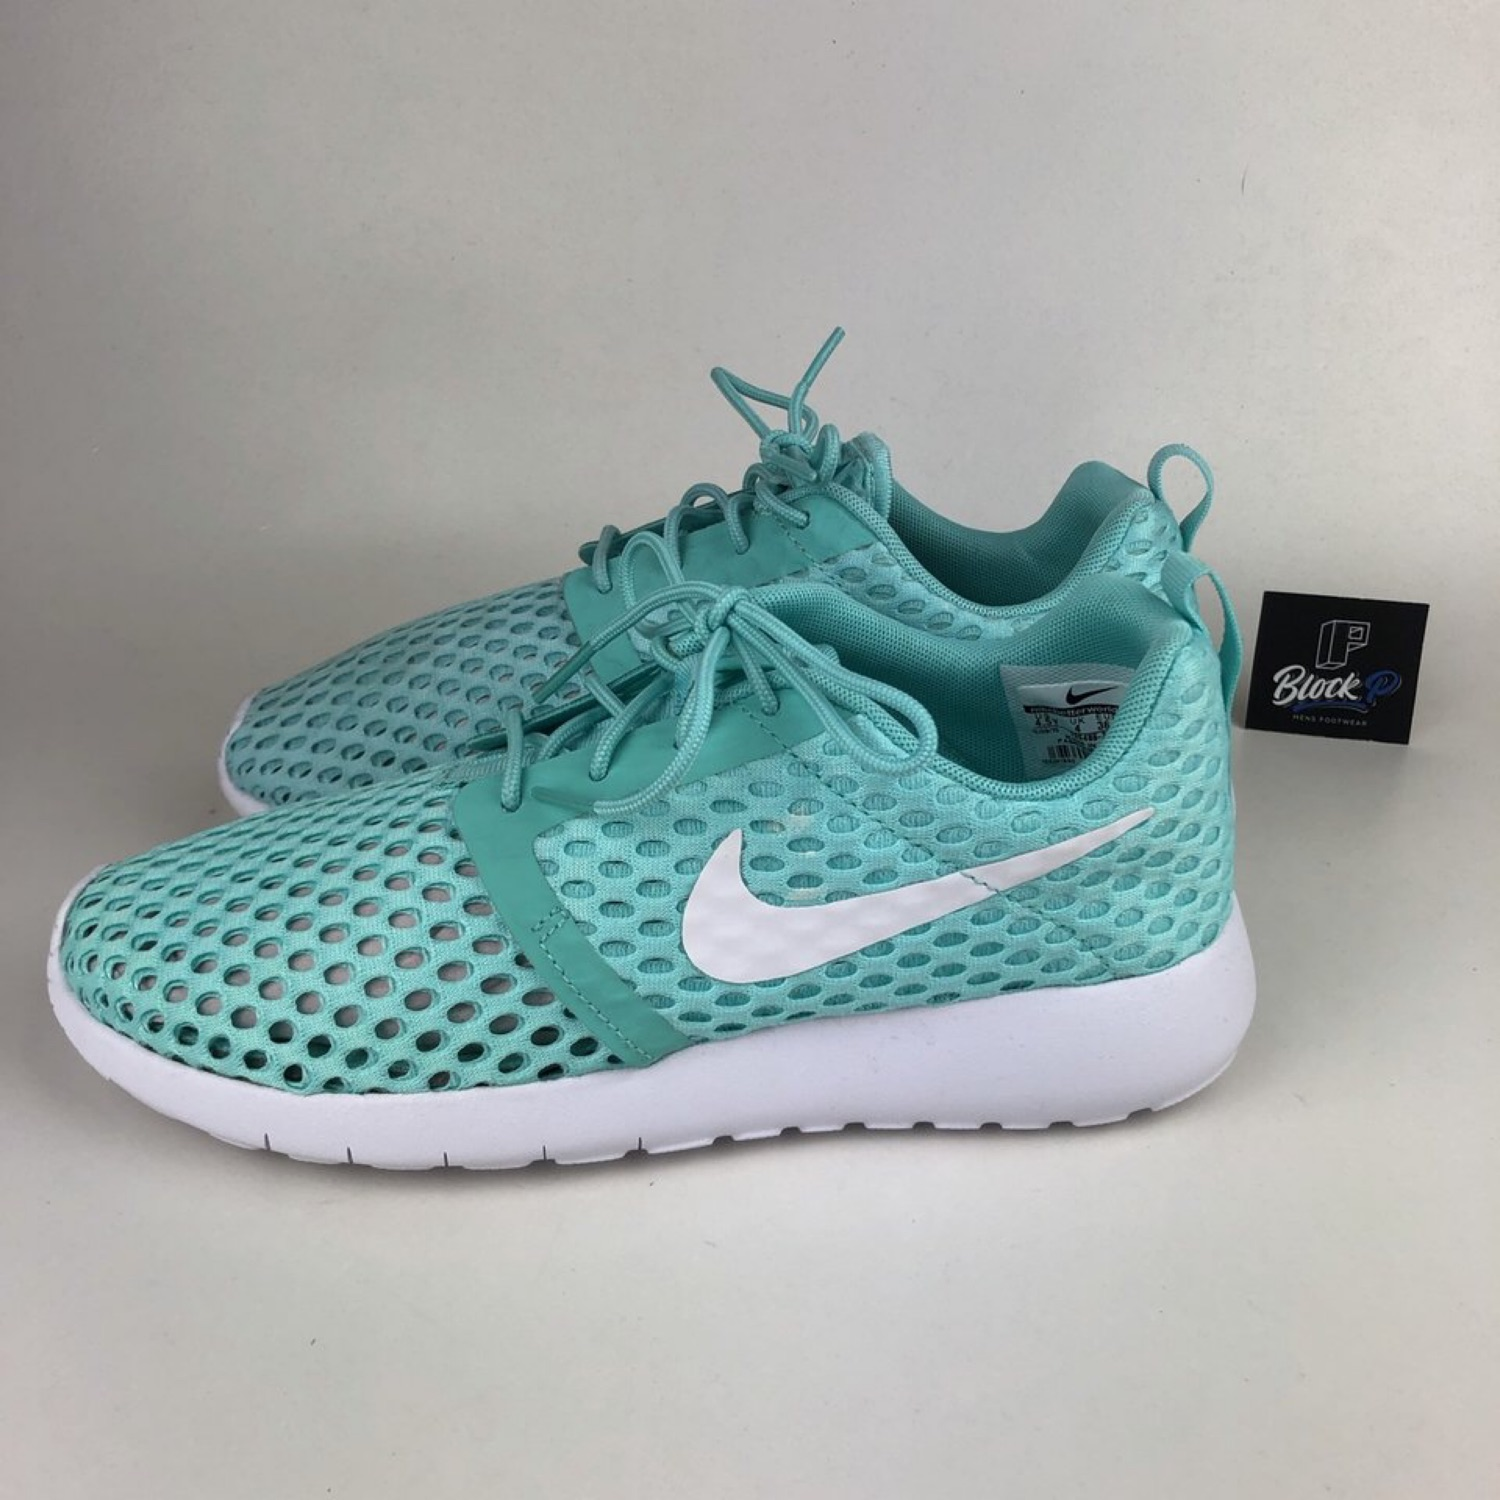 new concept 9c756 96f90 Nike Roshe One Flight Weight Turquoise Blue